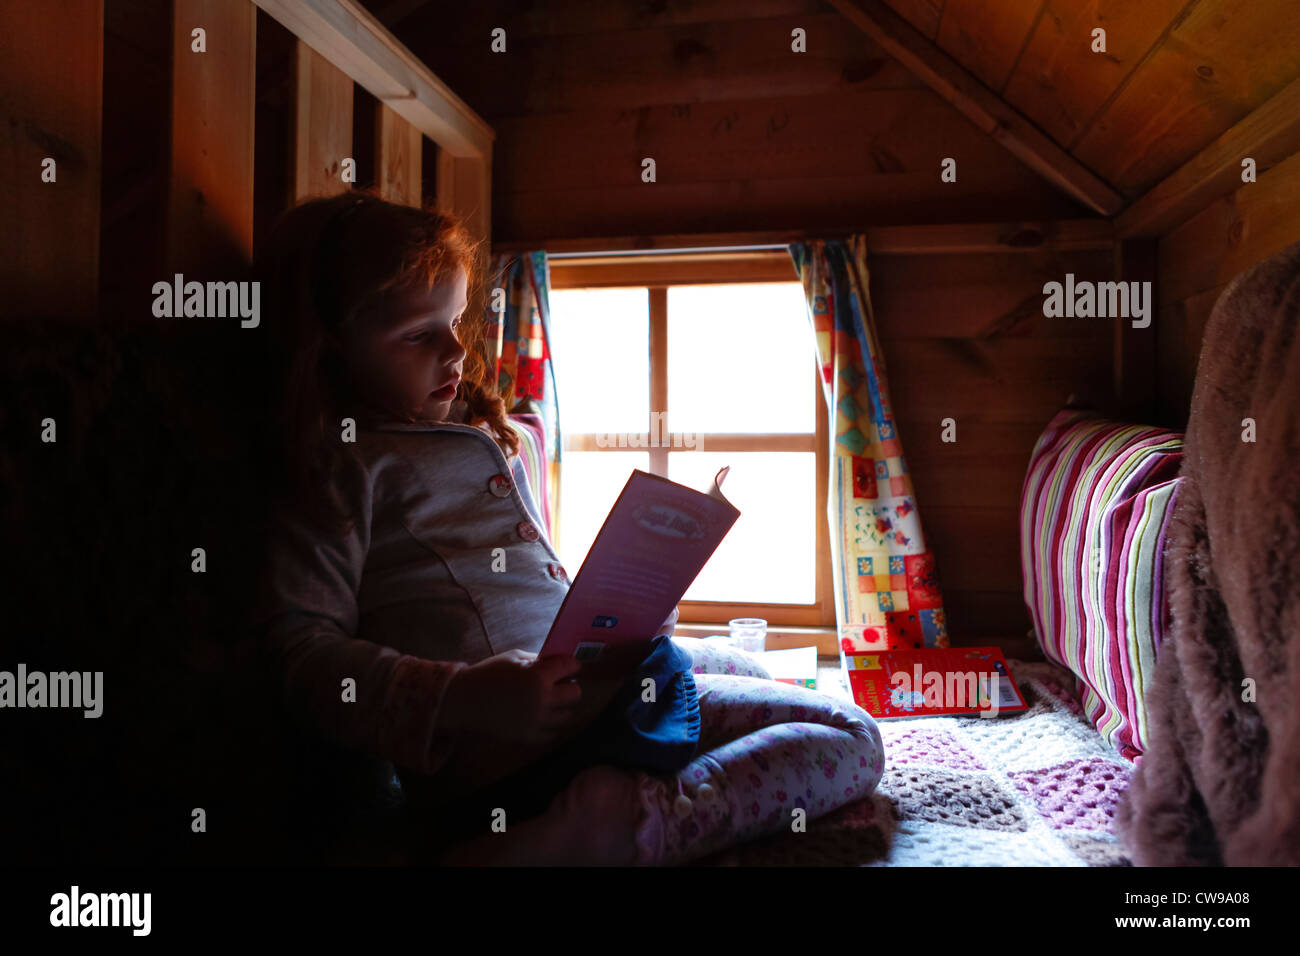 Little girl reading a book in her playhouse den - Stock Image